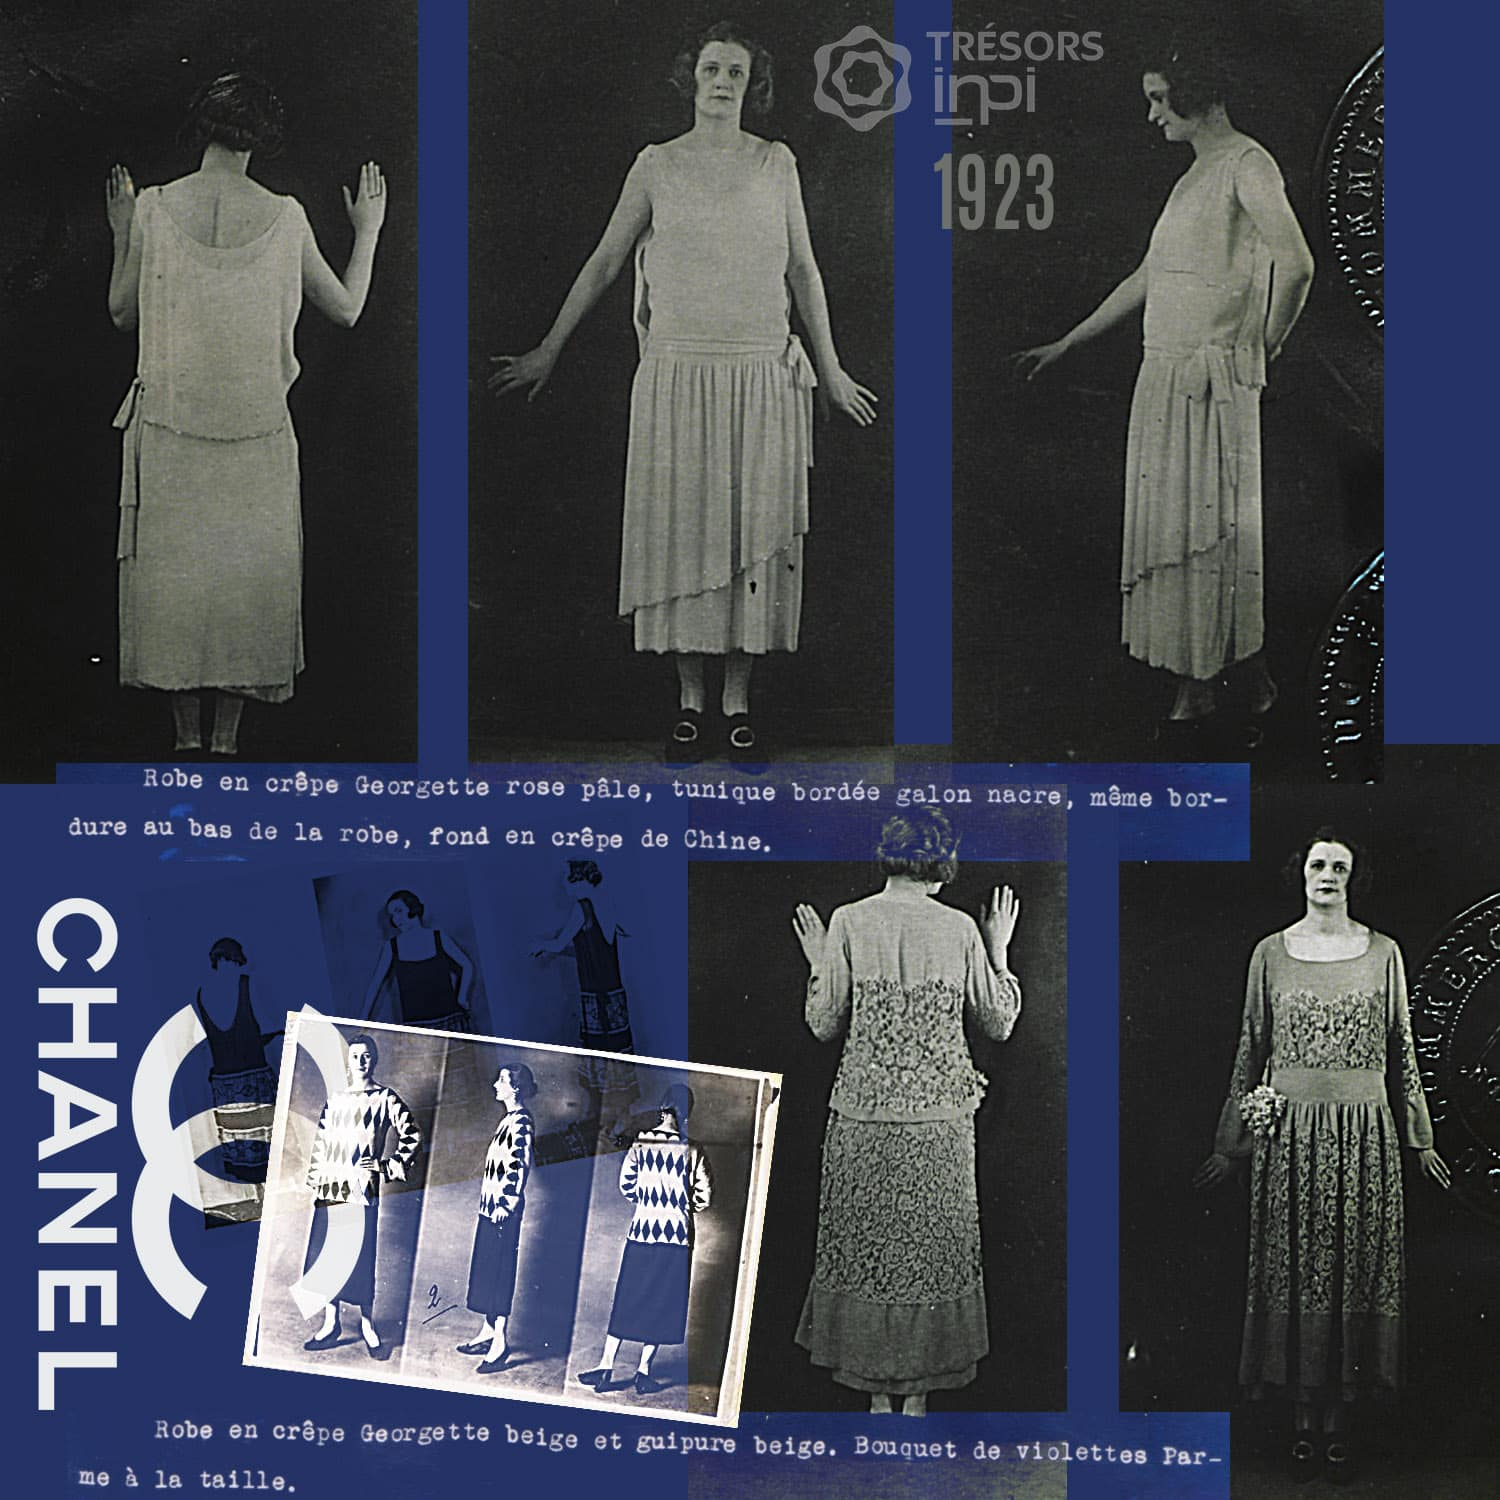 Coco Chanel 1923 inventions - INPI archives